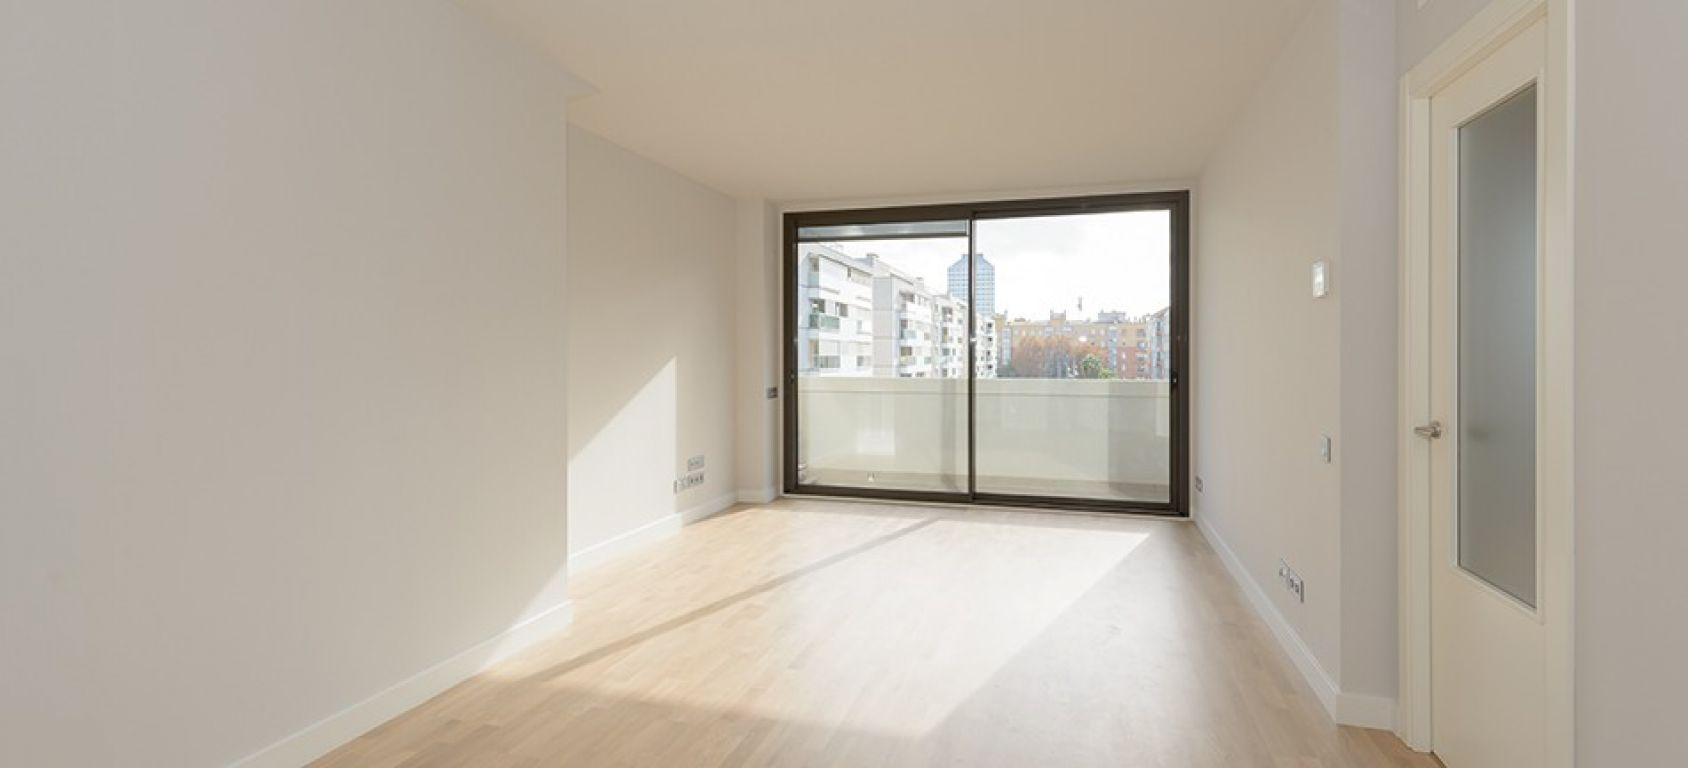 New home - Flat in, 108 m², close to bus and metro, new